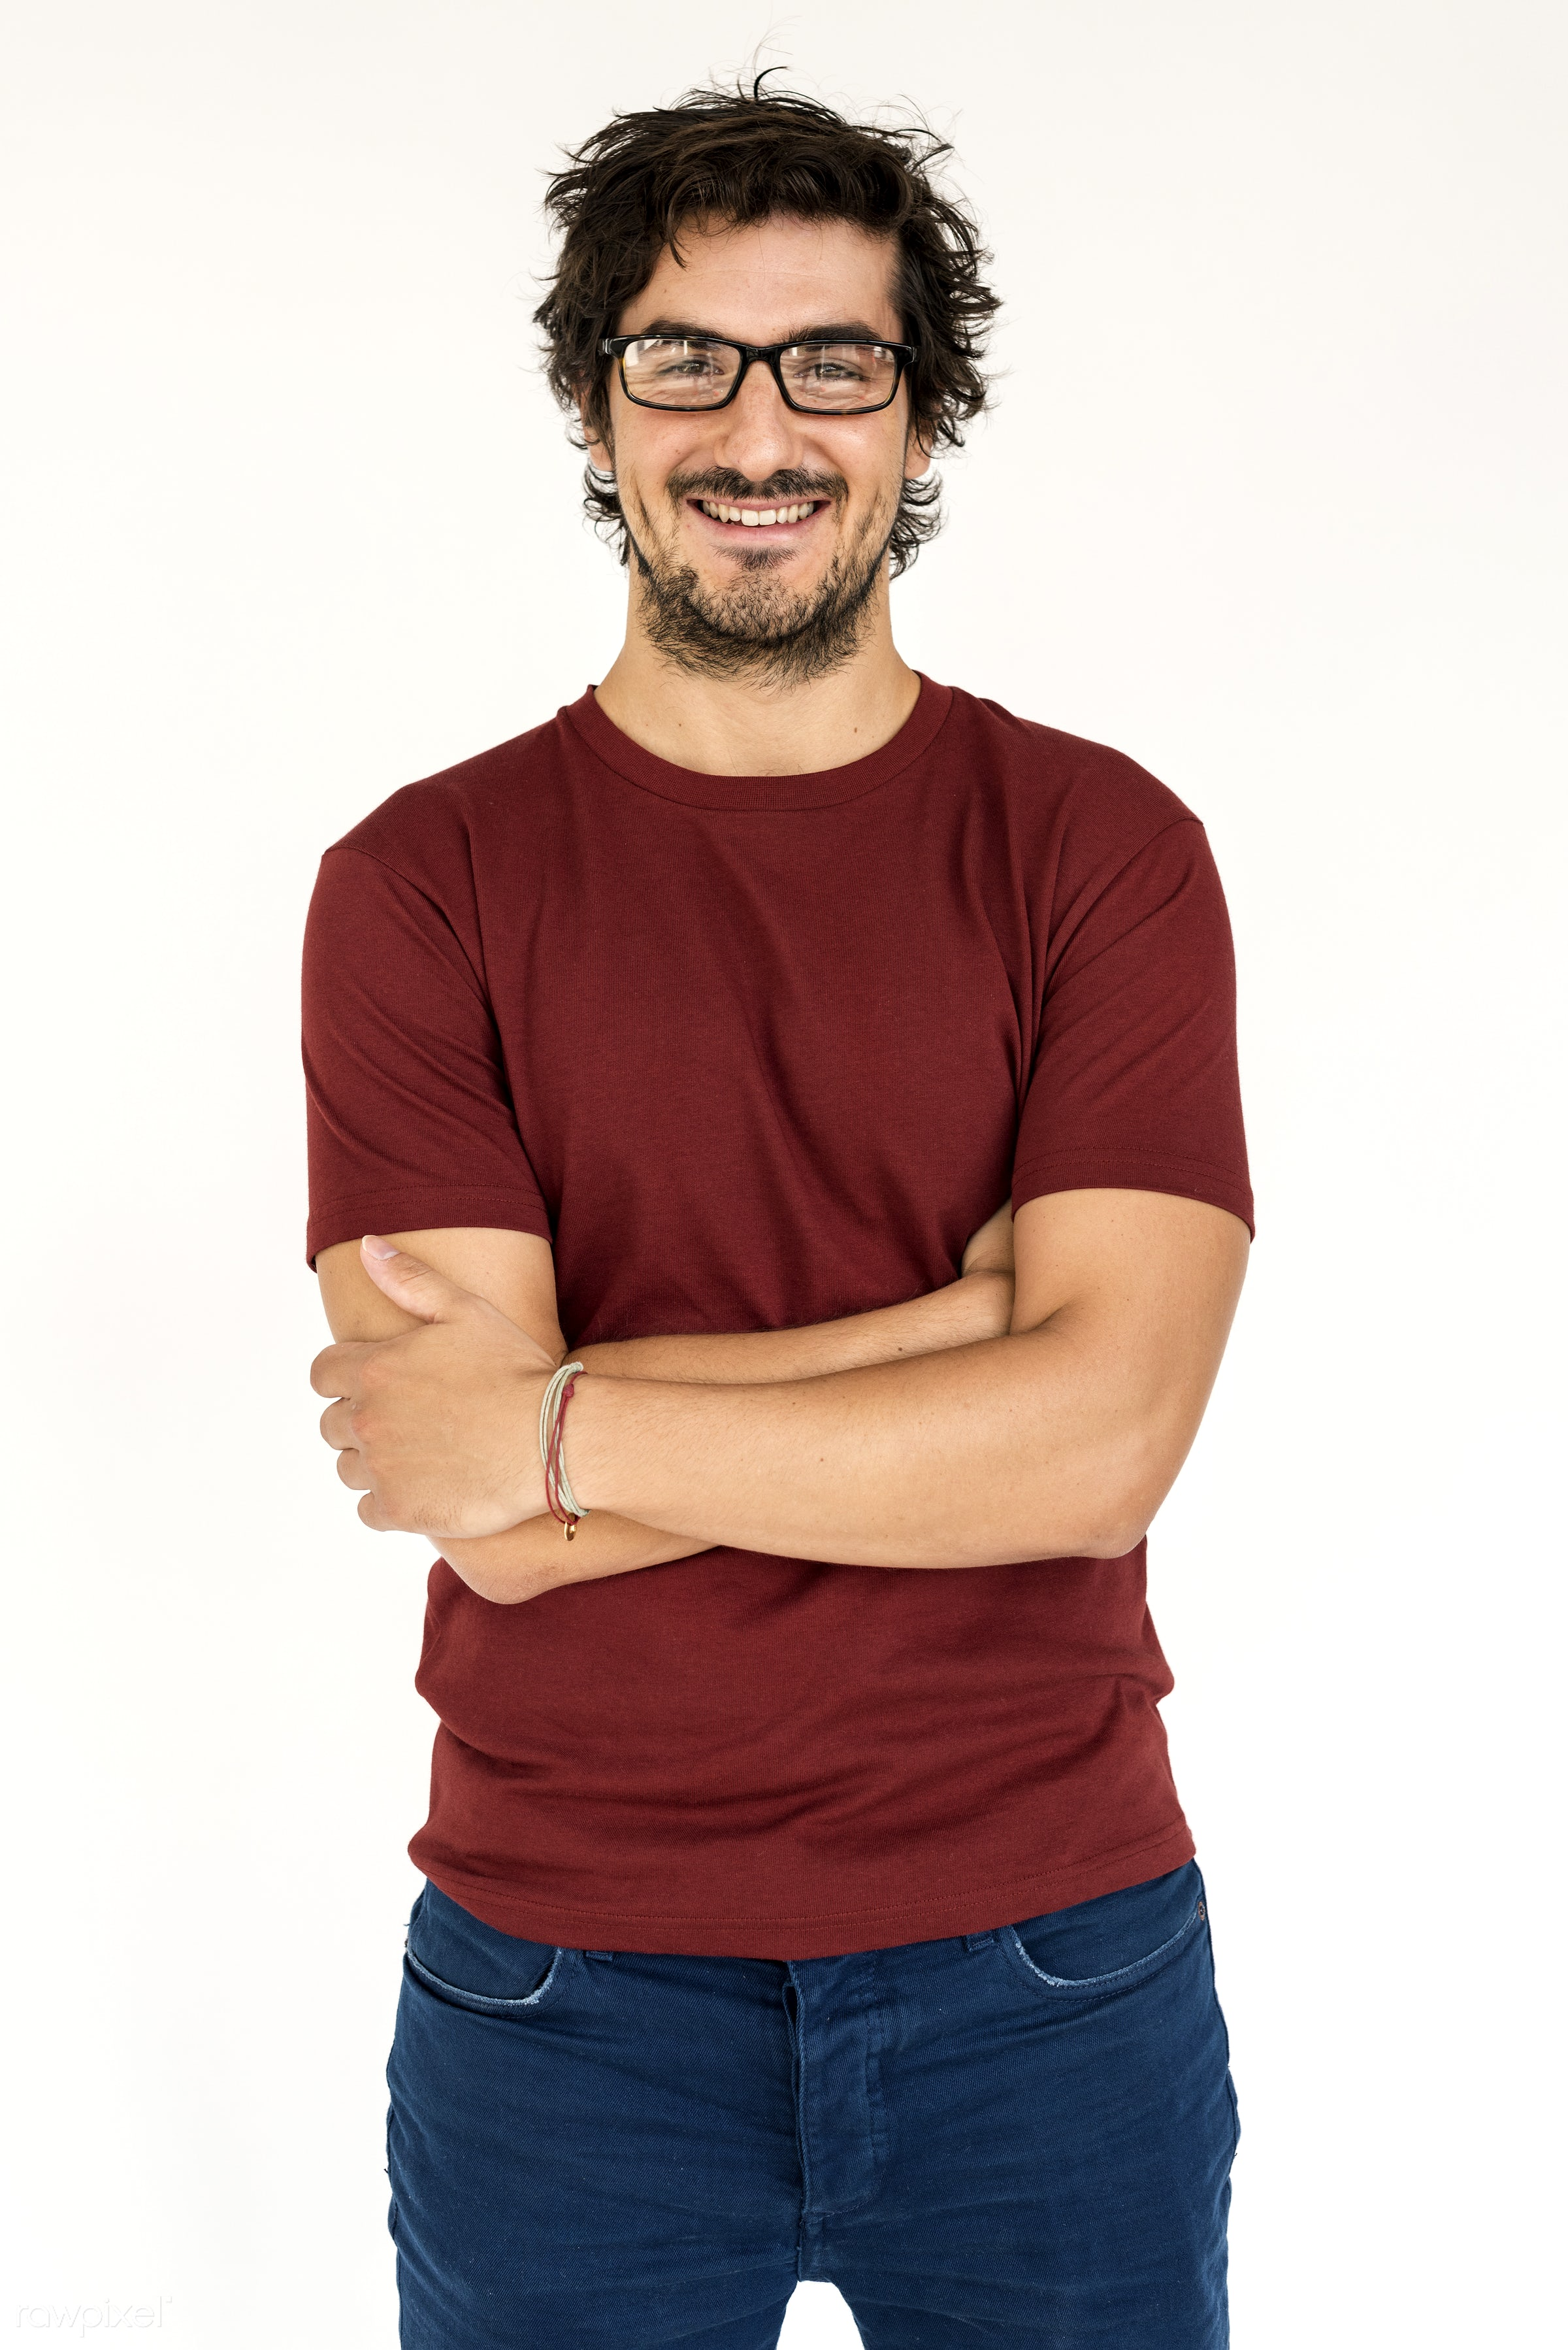 expression, studio, person, glasses, isolated on white, people, caucasian, happy, casual, cheerful, smiling, man, isolated,...